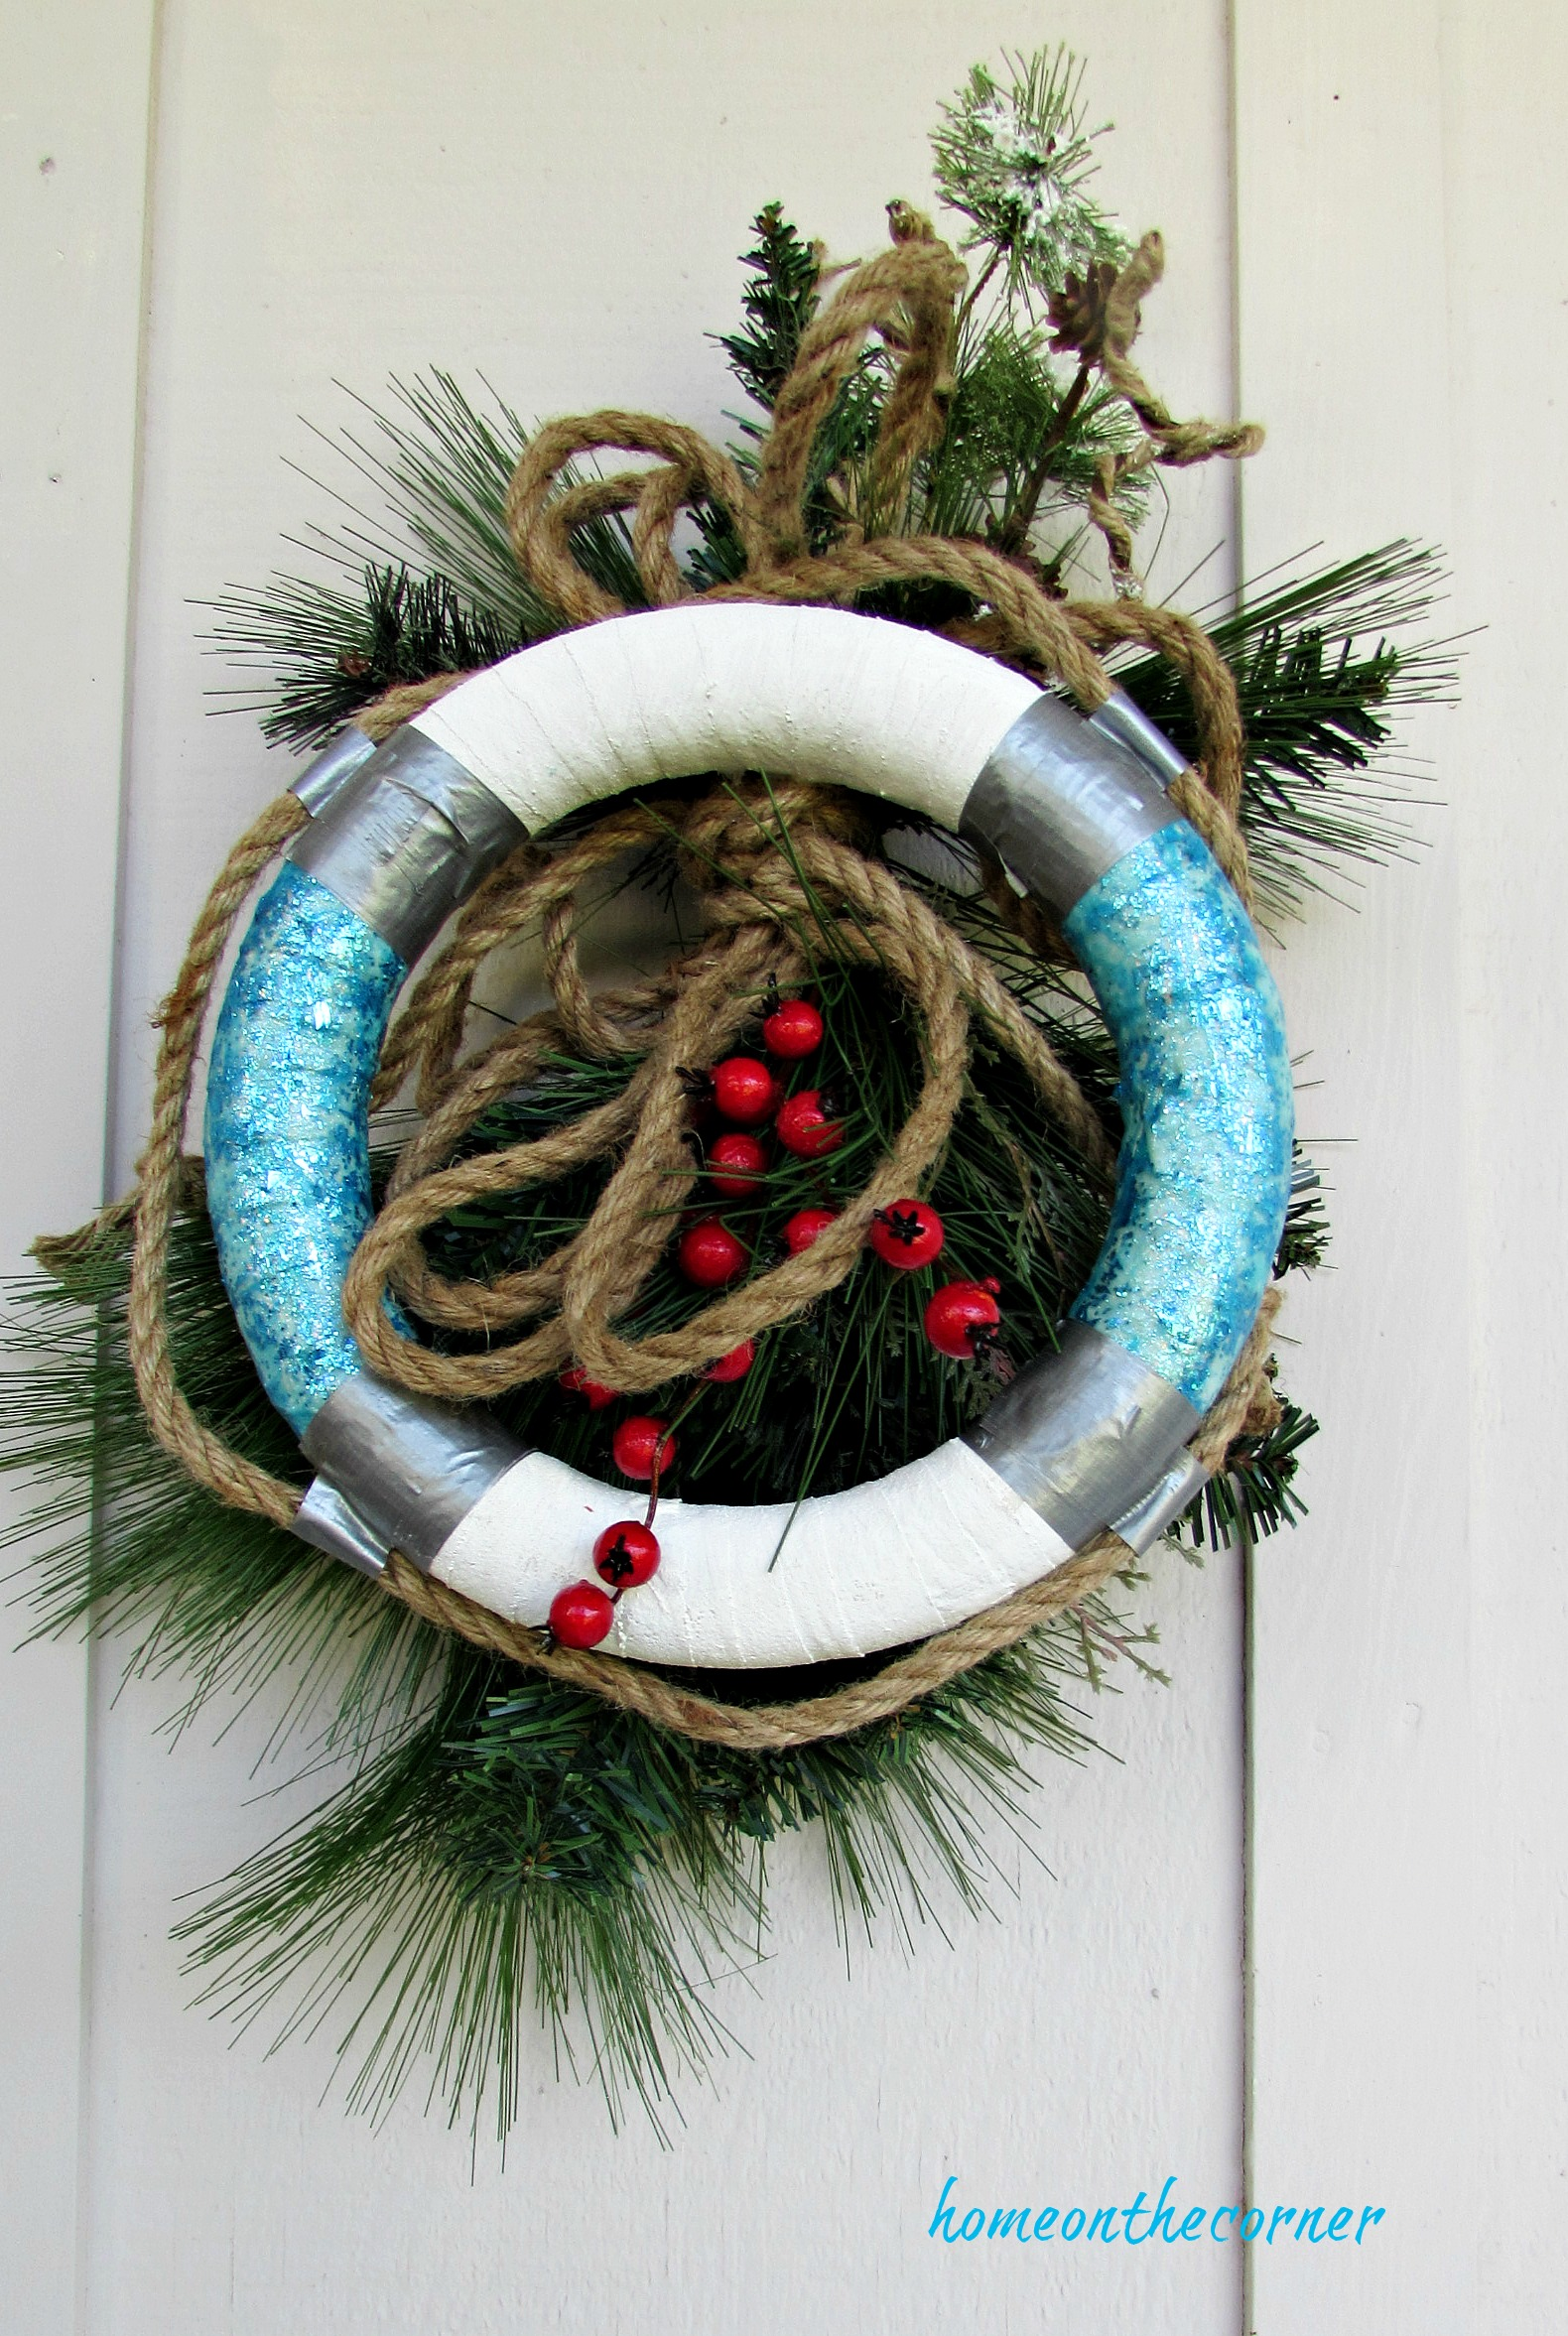 christmas wreath life buoy rope, greens, rope and berries